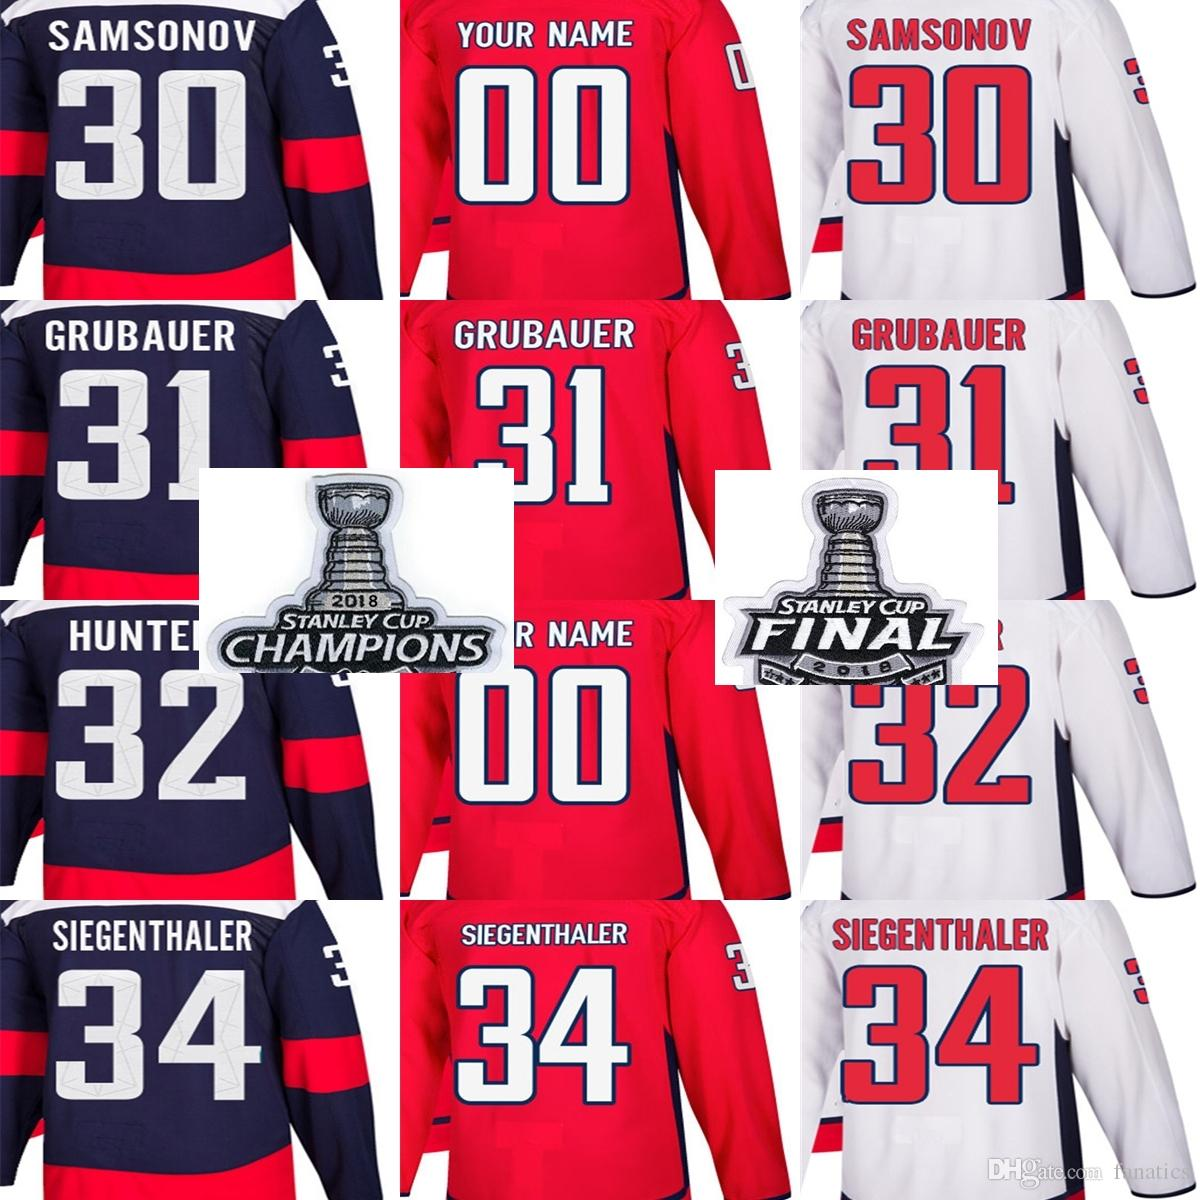 info for 4658f d20ce 2018 Stanley Cup Champions Final Patch Men Washington Capitals Ilya  Samsonov Philipp Grubauer Dale Hunter Siegenthaler Custom Hockey Jerseys